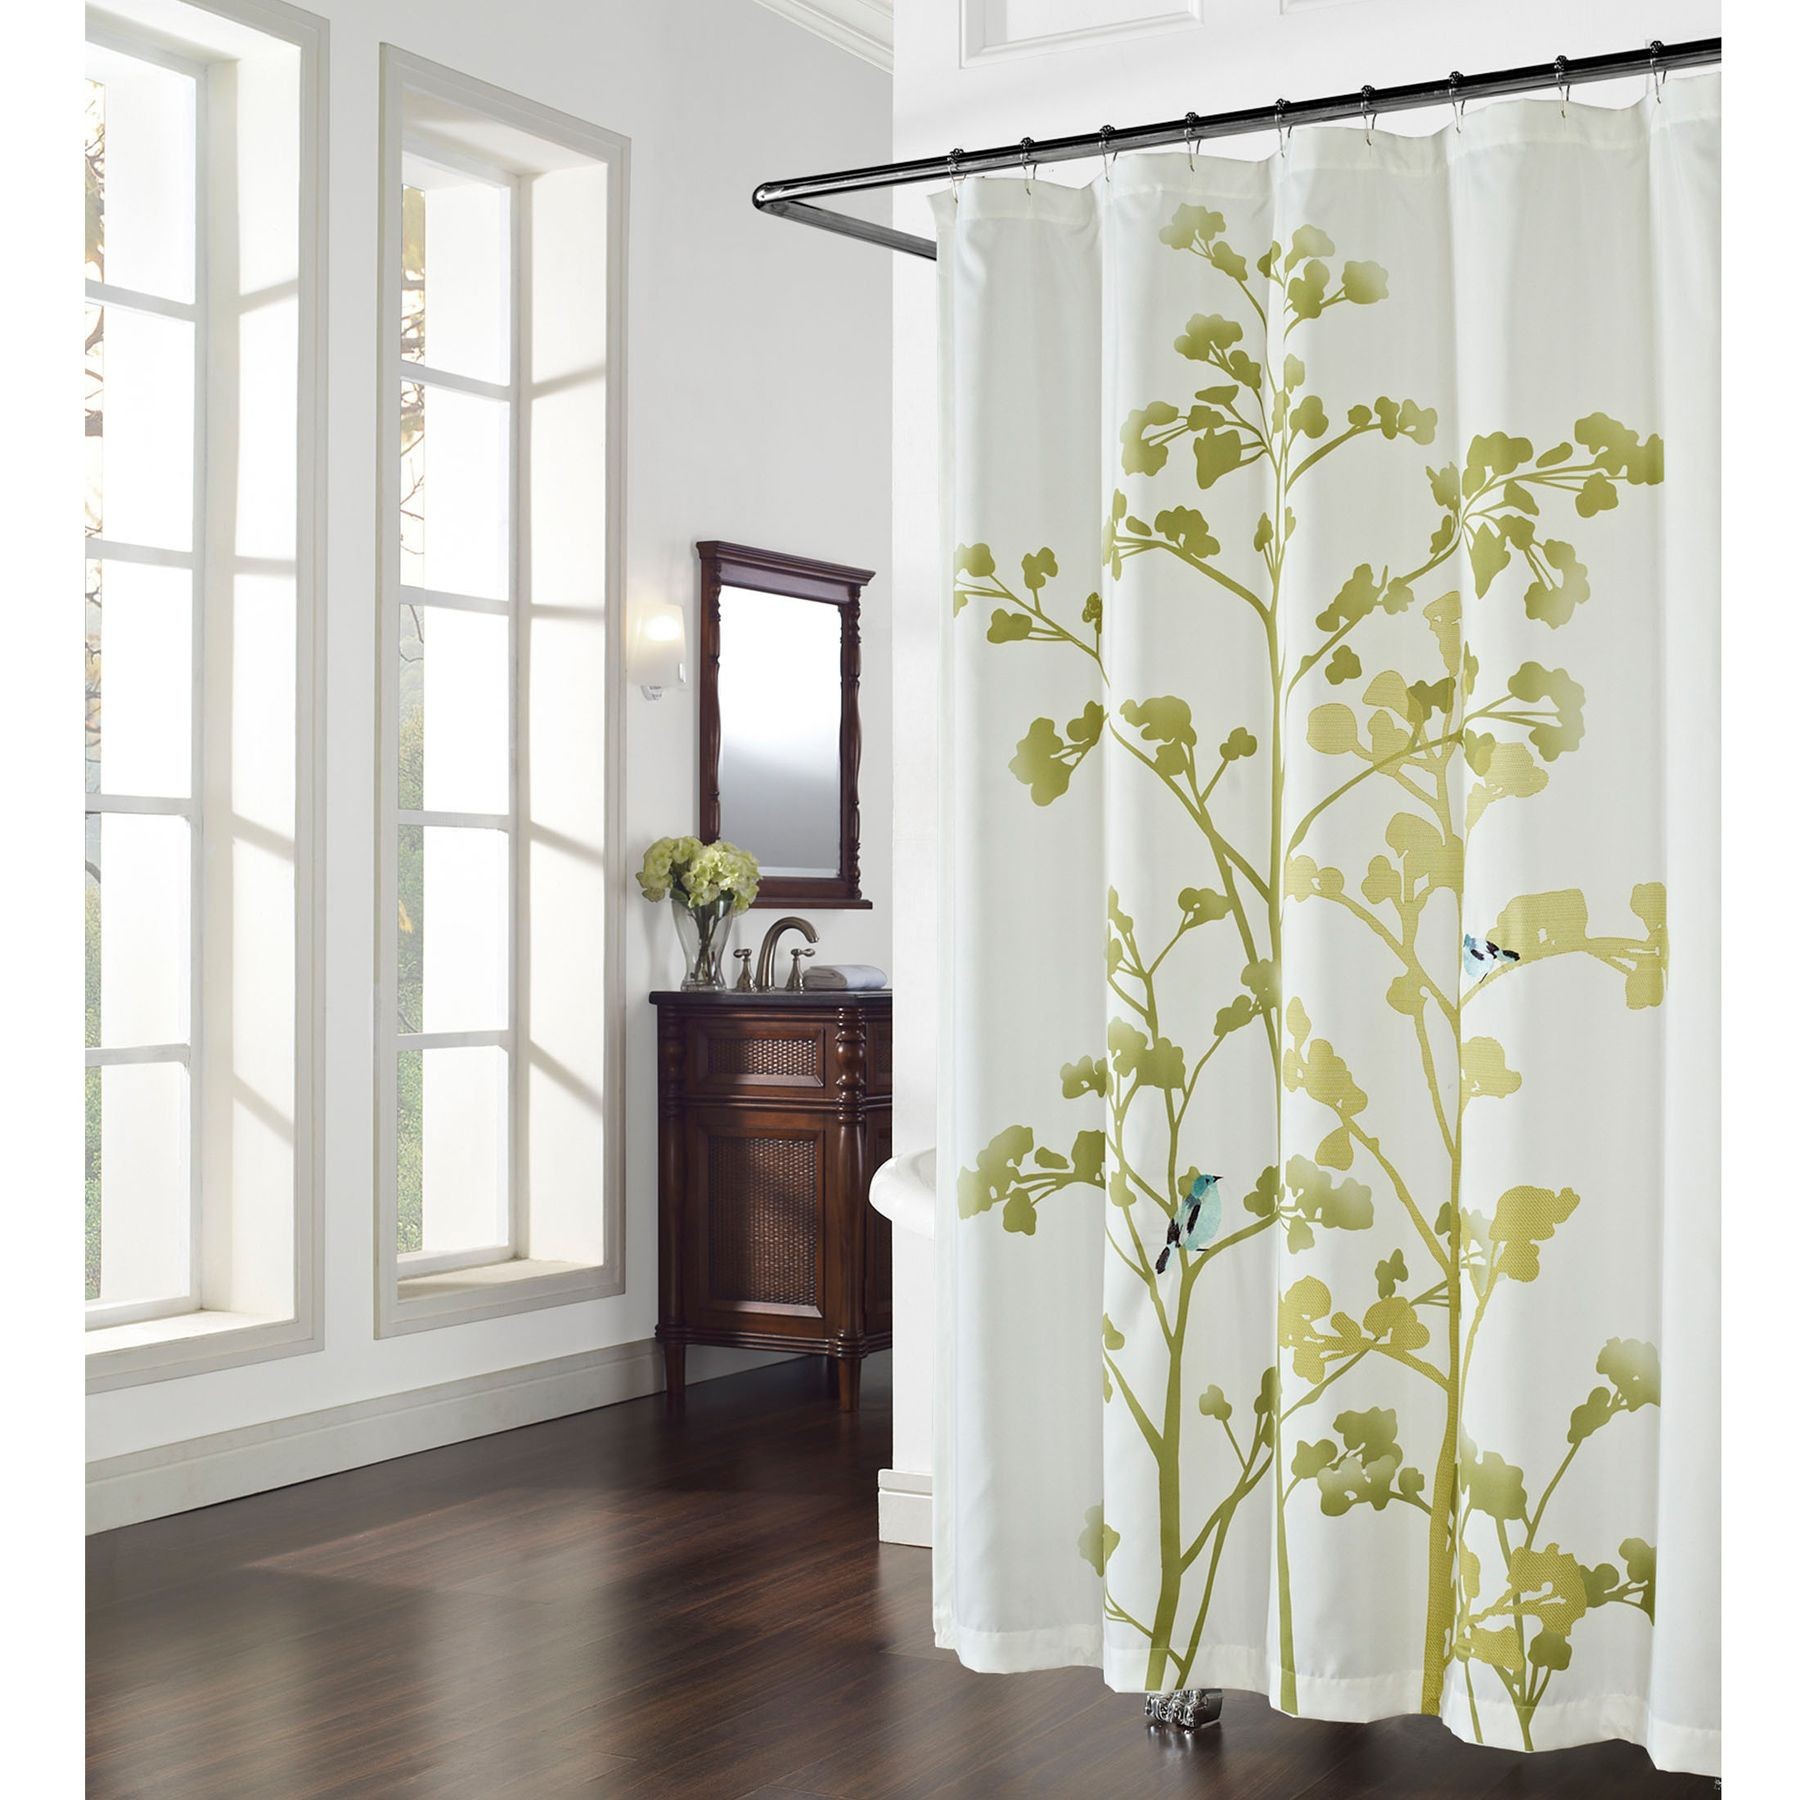 This lovely shower curtain features a pattern of offset printed tree